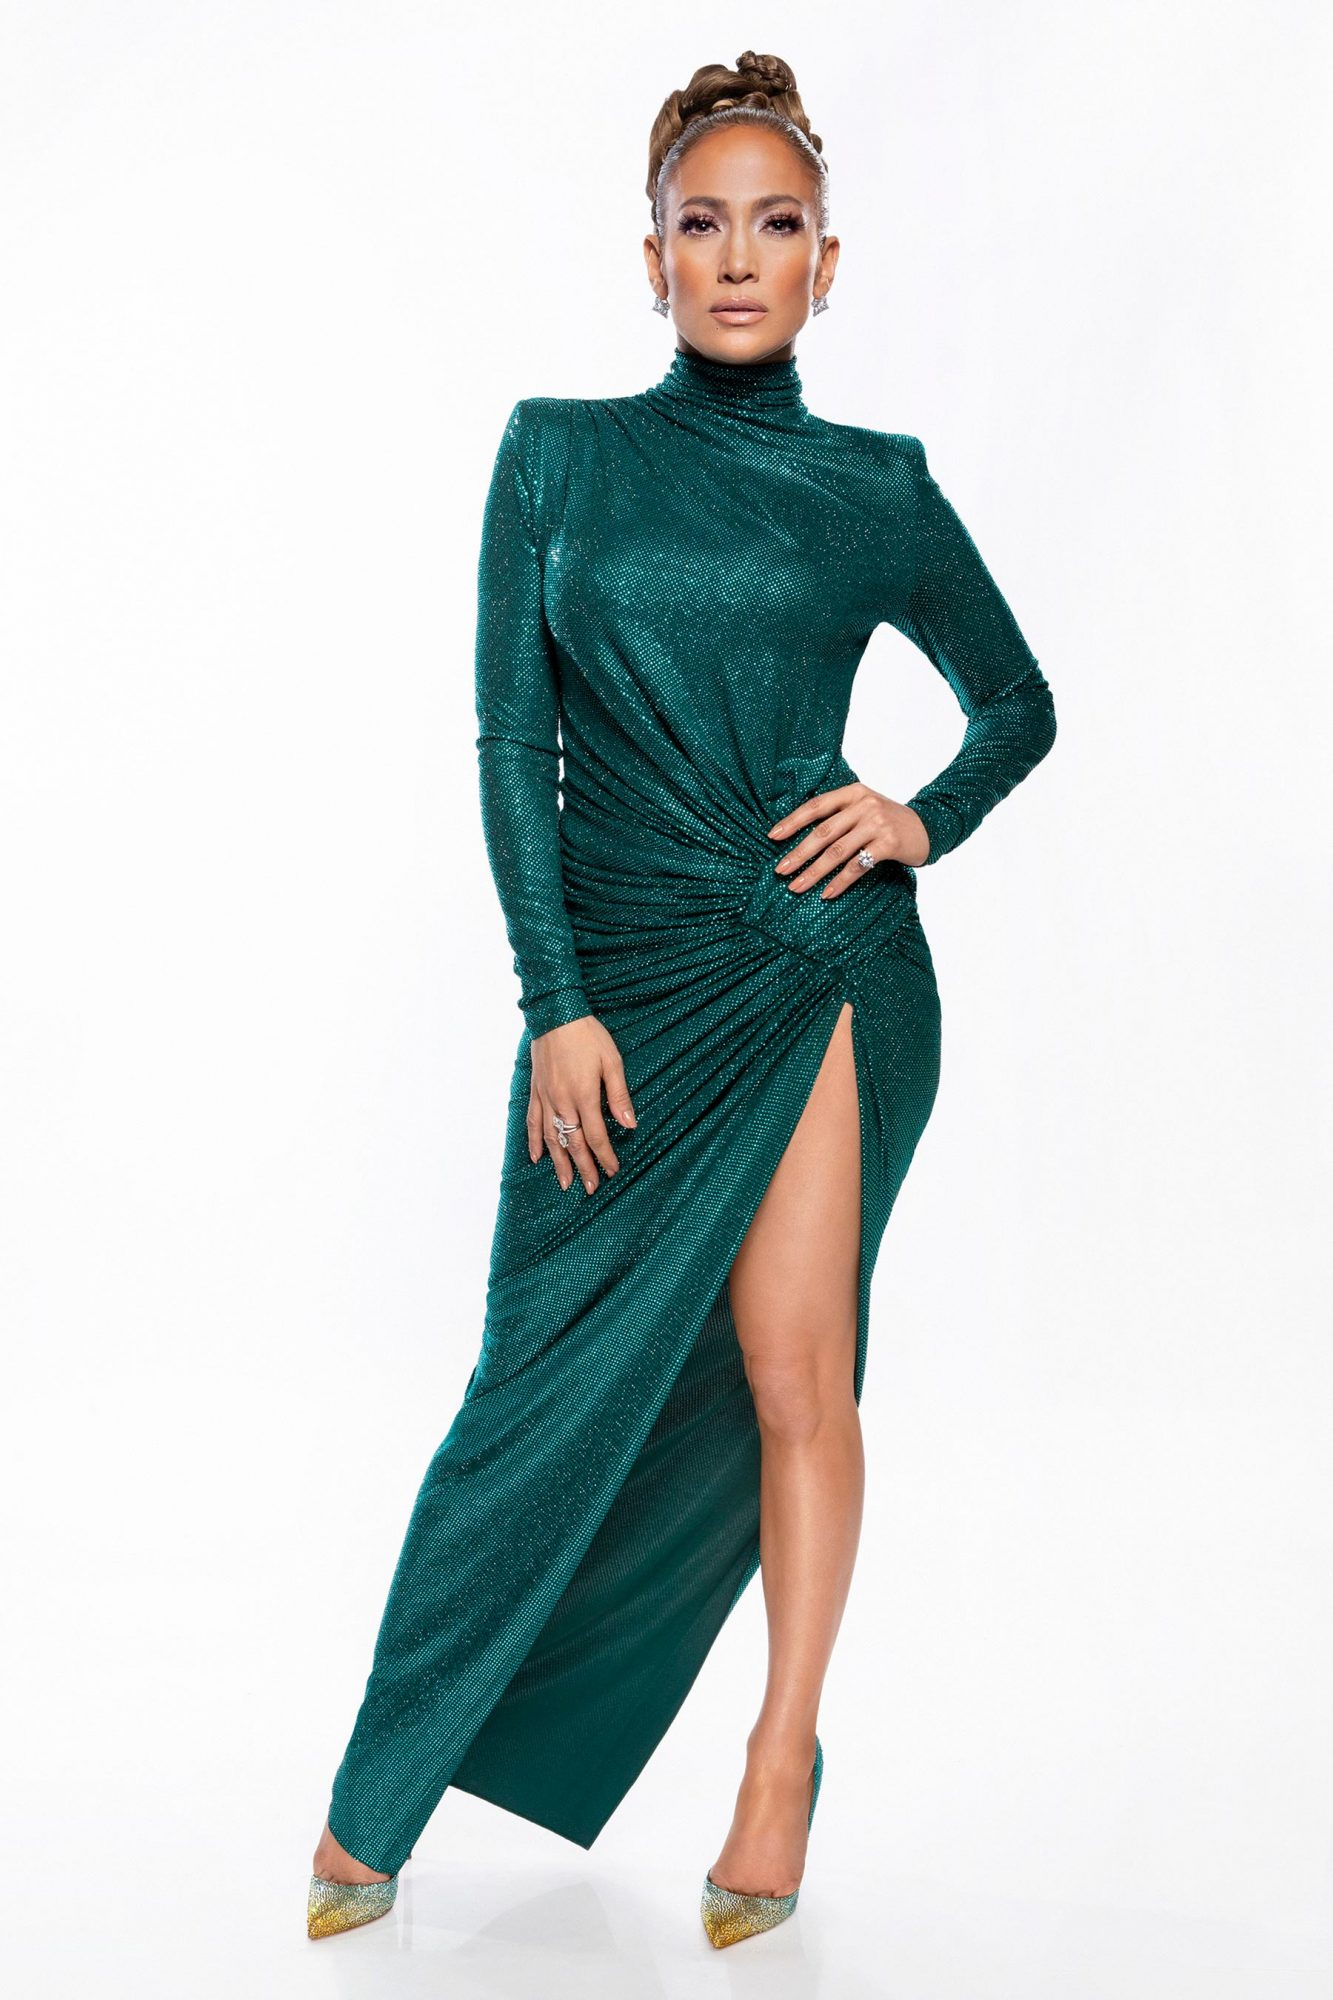 We amor, amor, amor this show-stopping, deep teal dress